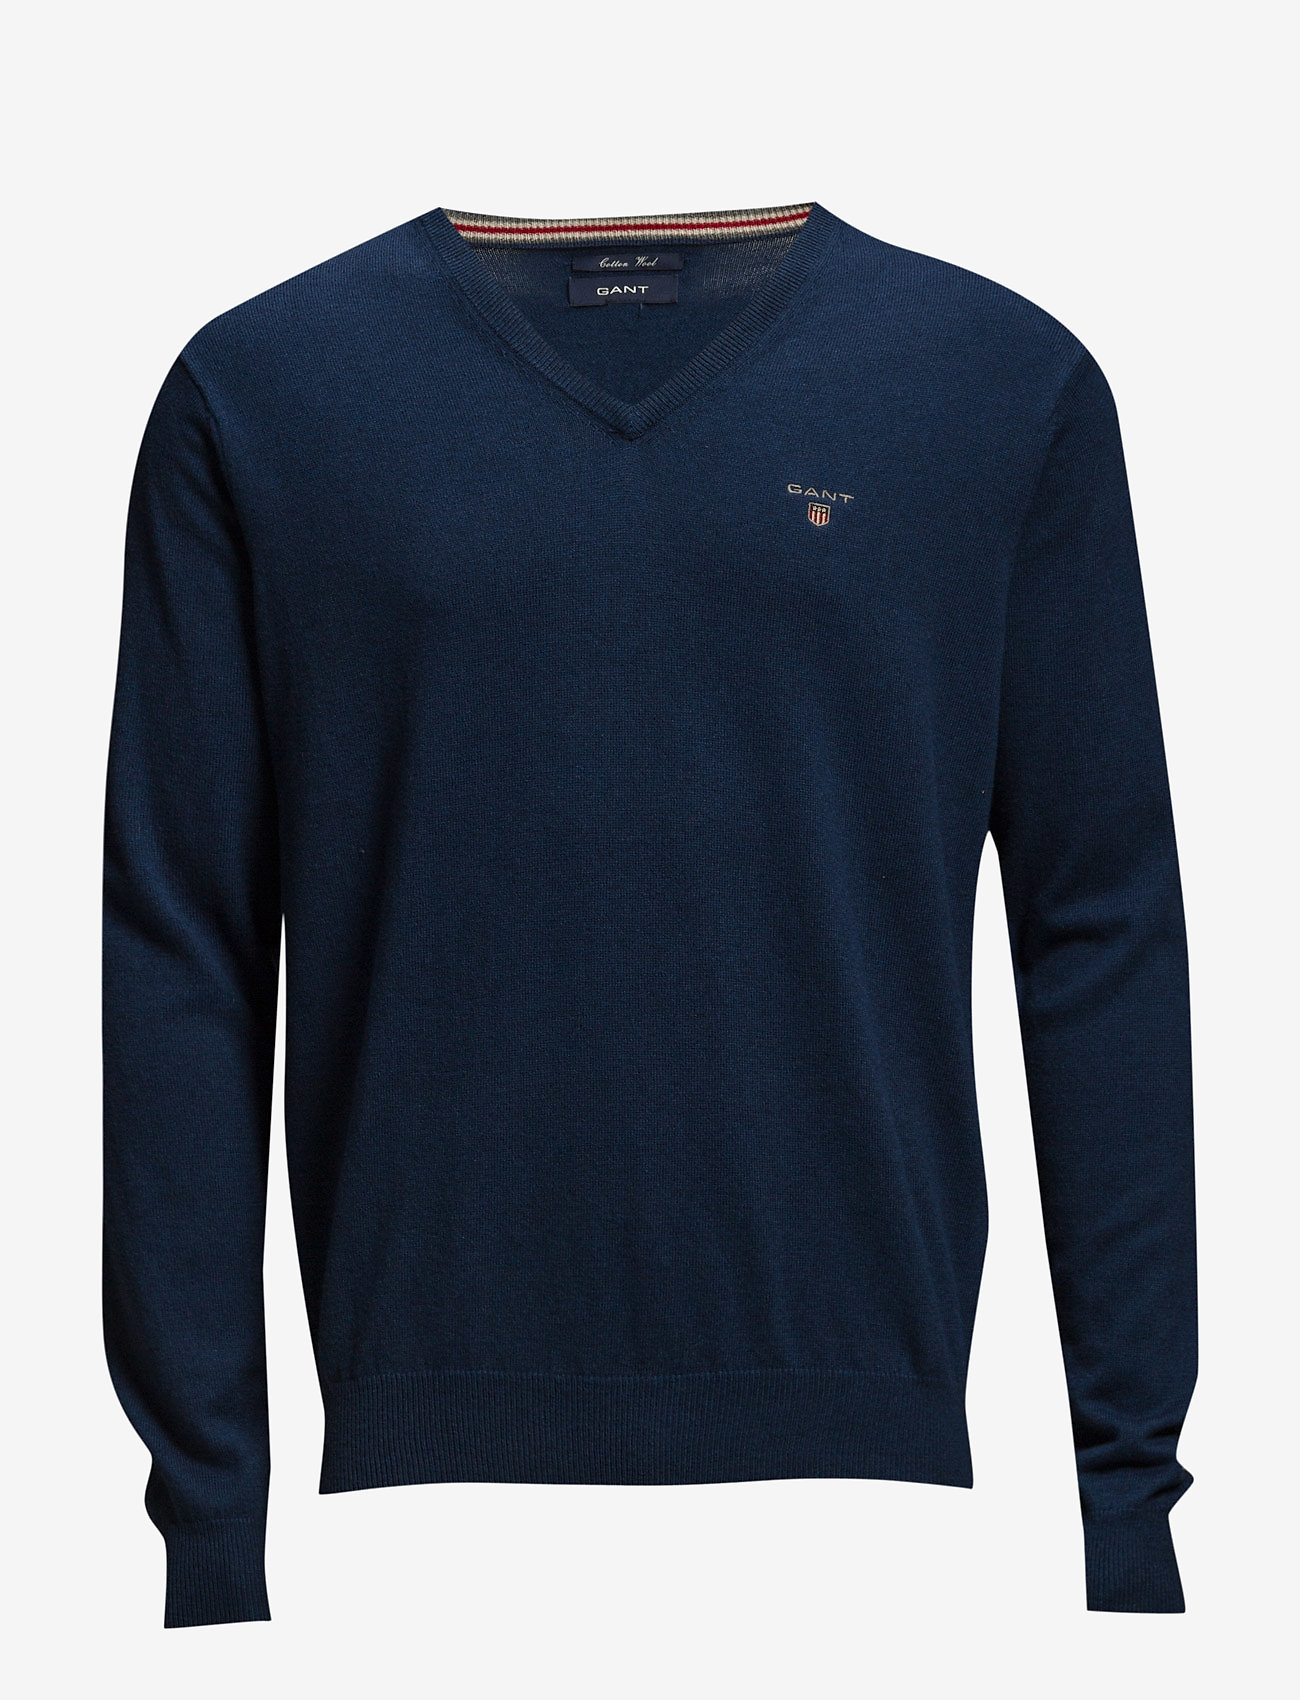 GANT - COTTON WOOL V-NECK - knitted v-necks - marine melange - 0